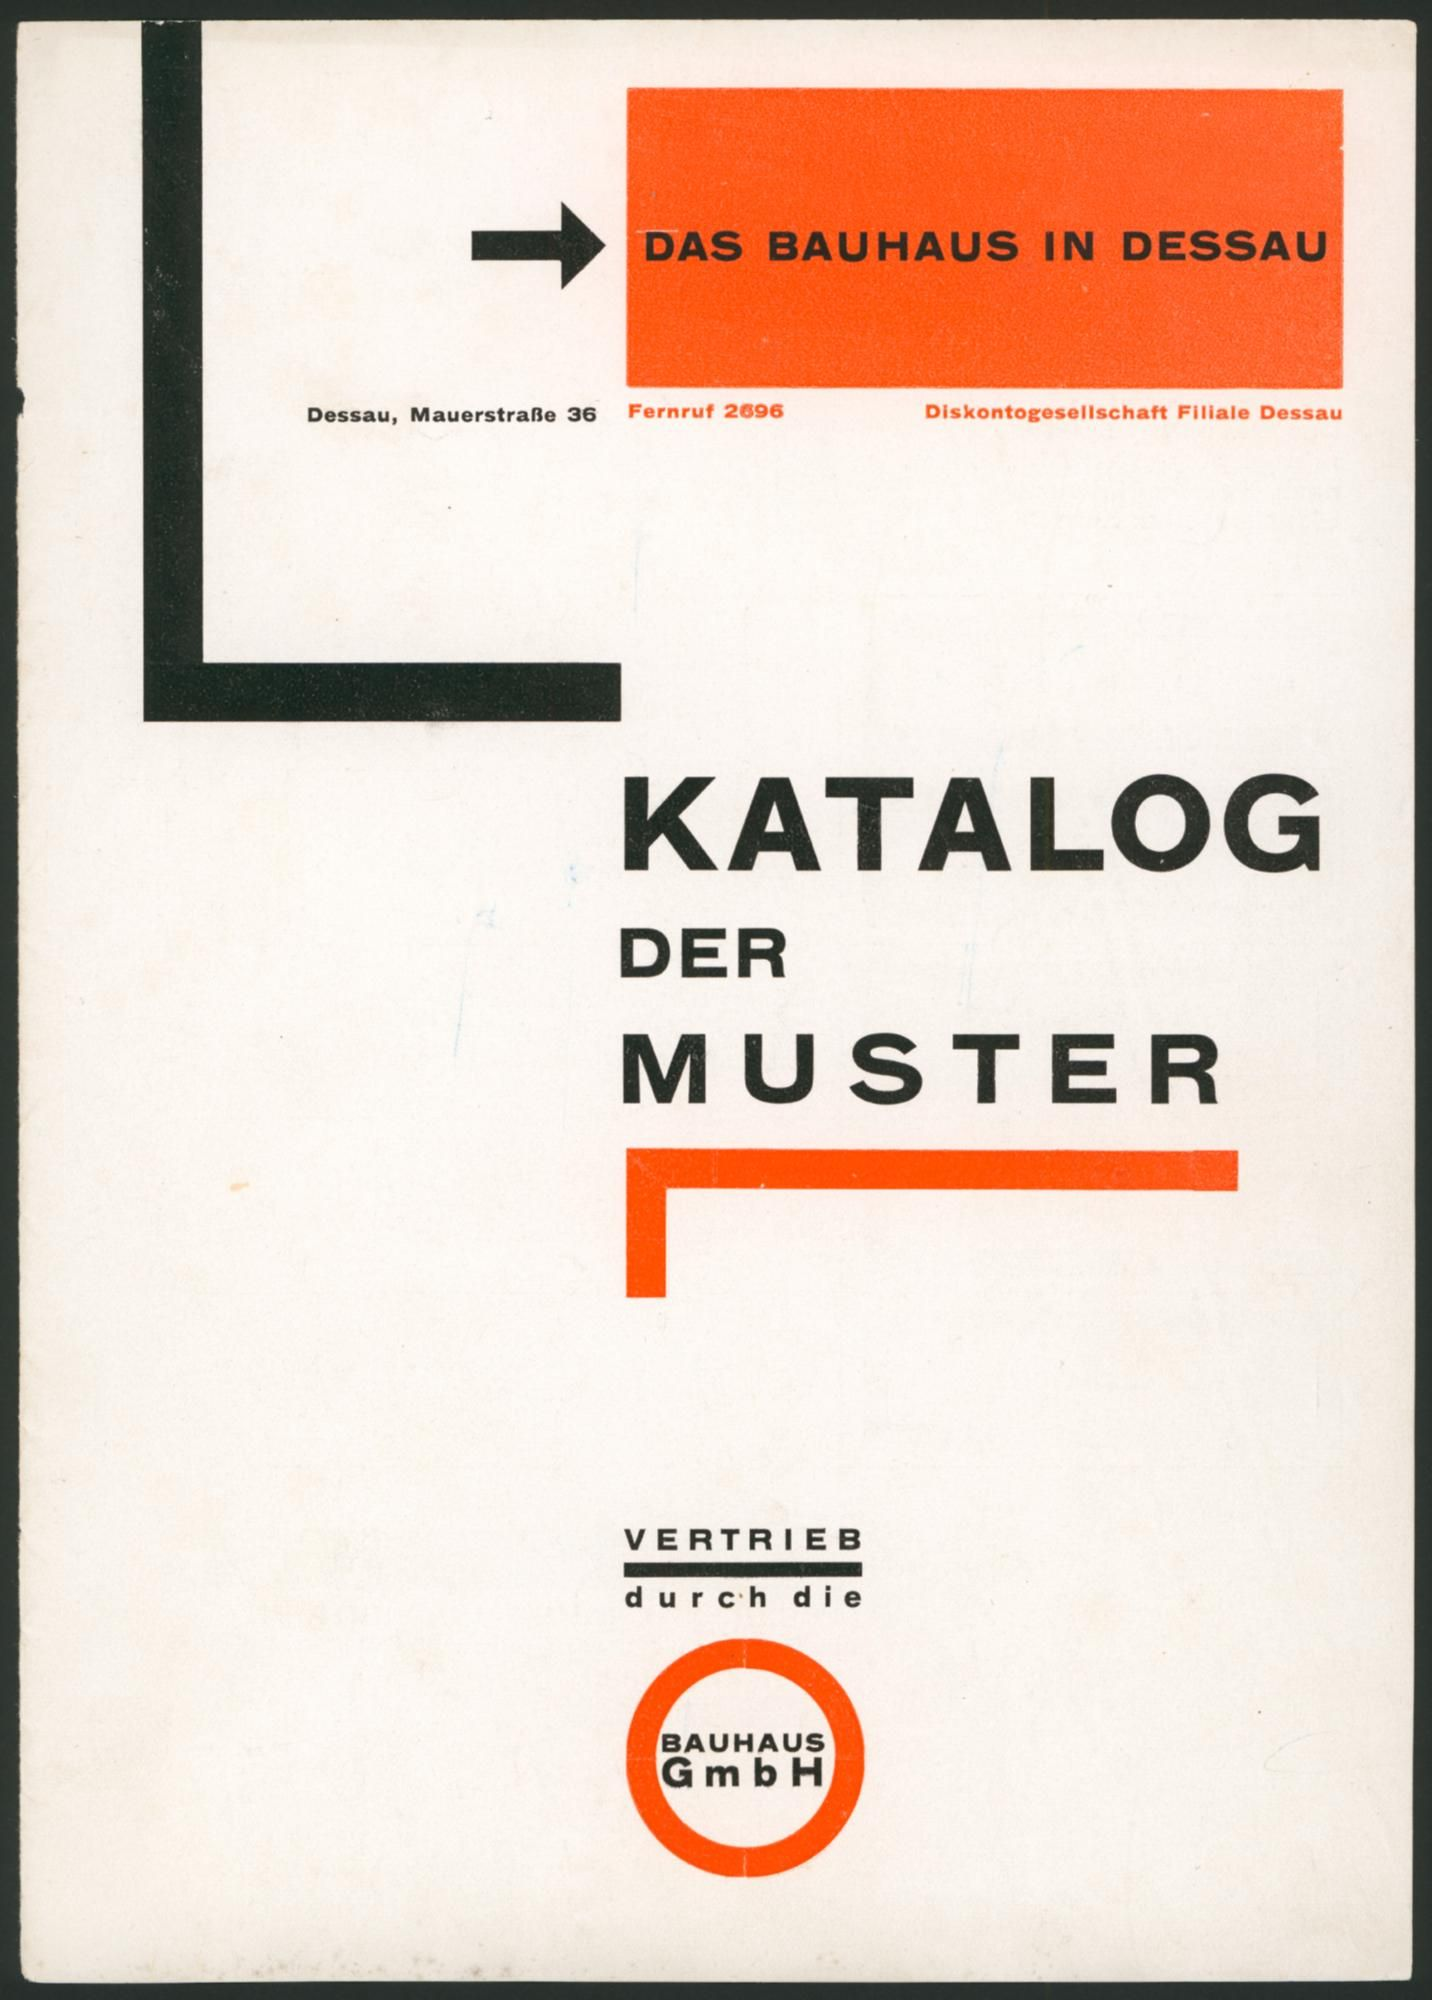 Bauhaus Architekturstil Title Katalong Der Muster Designer Herbert Bayer Date It Was